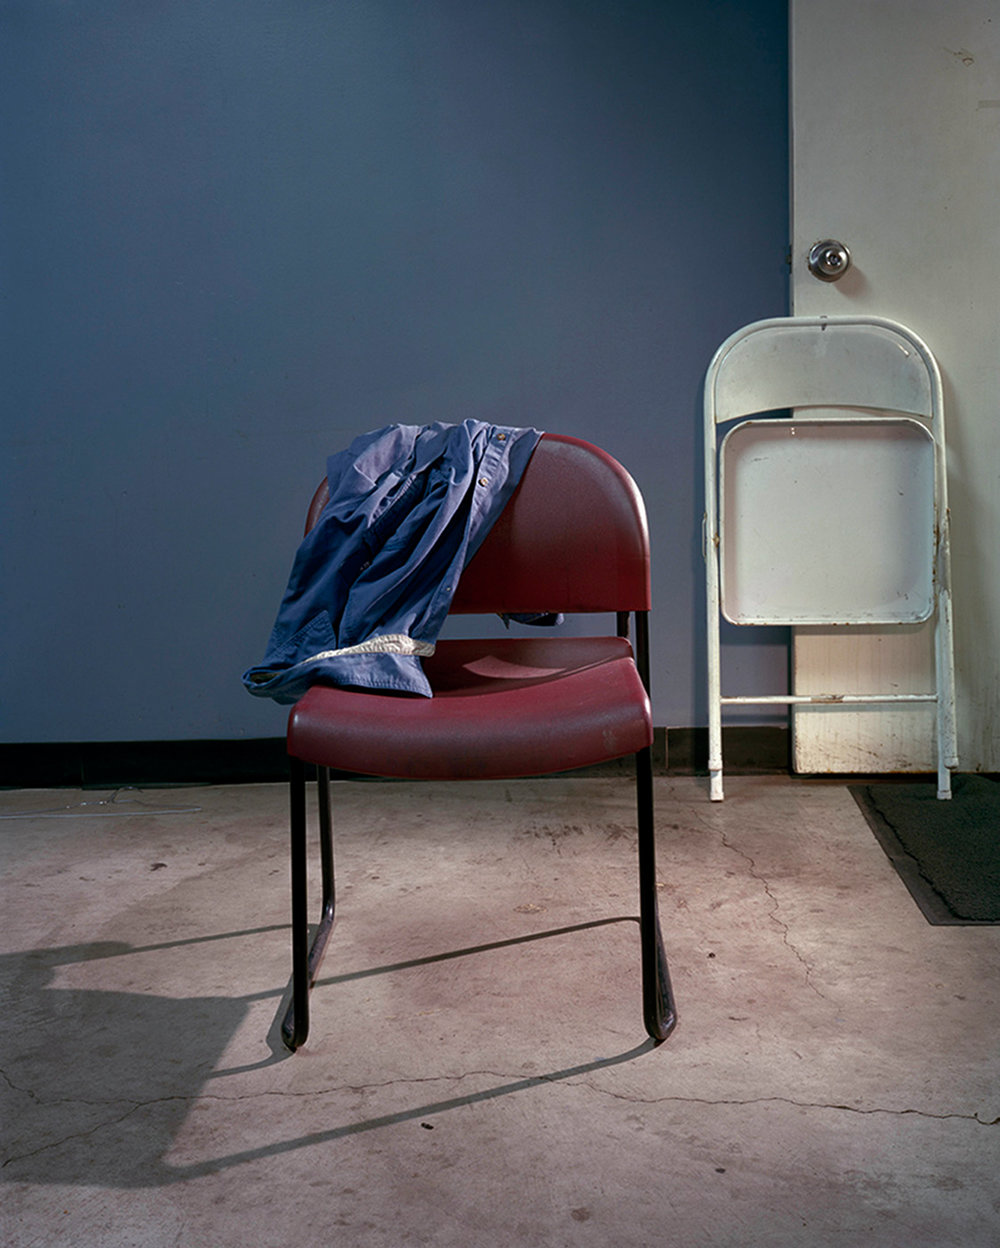 Chair, Chicago IL,  2013 © Juan Giraldo